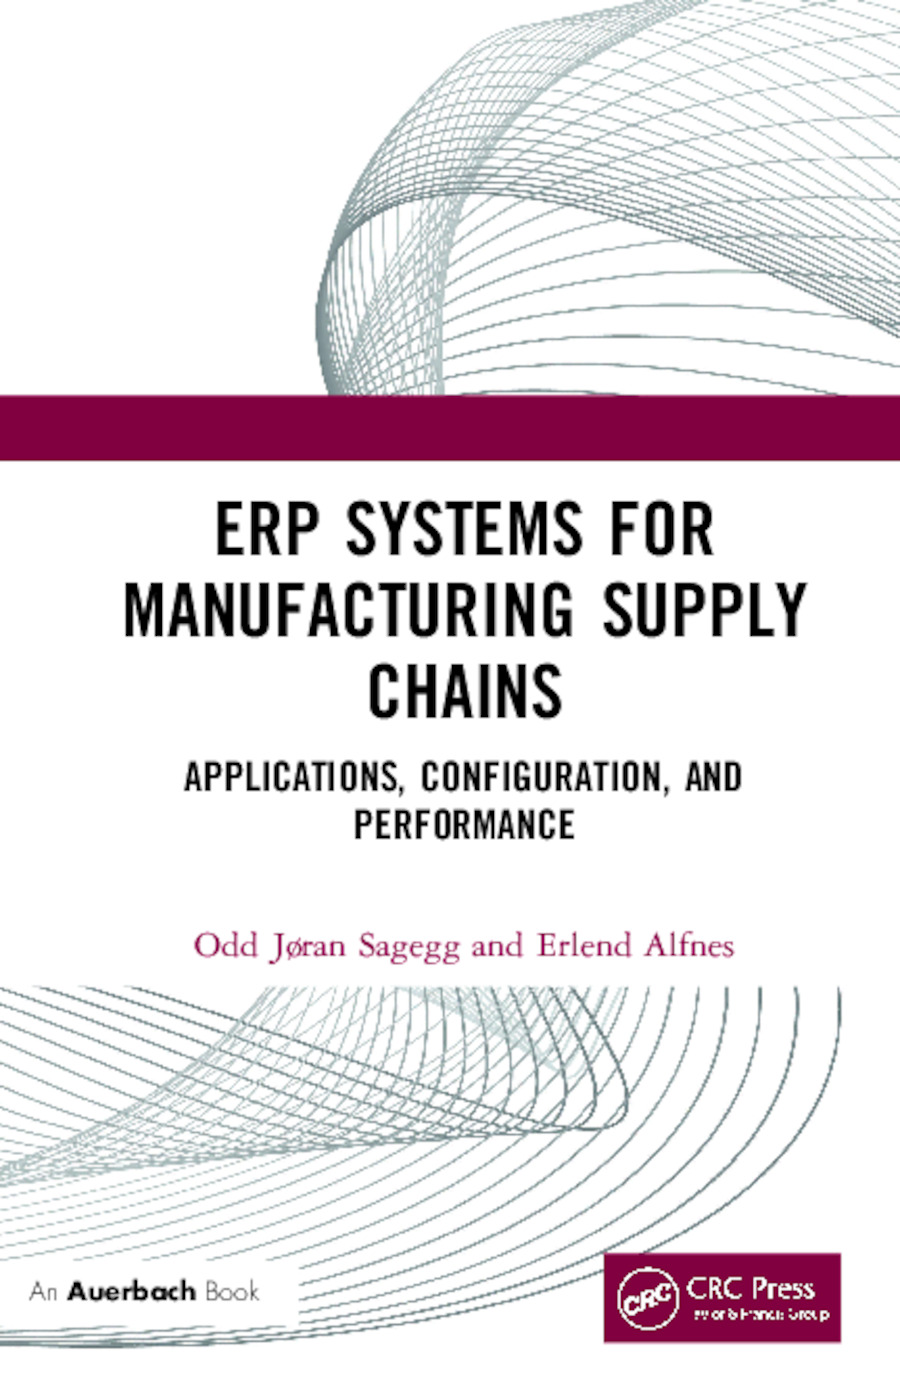 ERP Systems for Manufacturing Supply Chains: Applications, Configuration, and Performance book cover